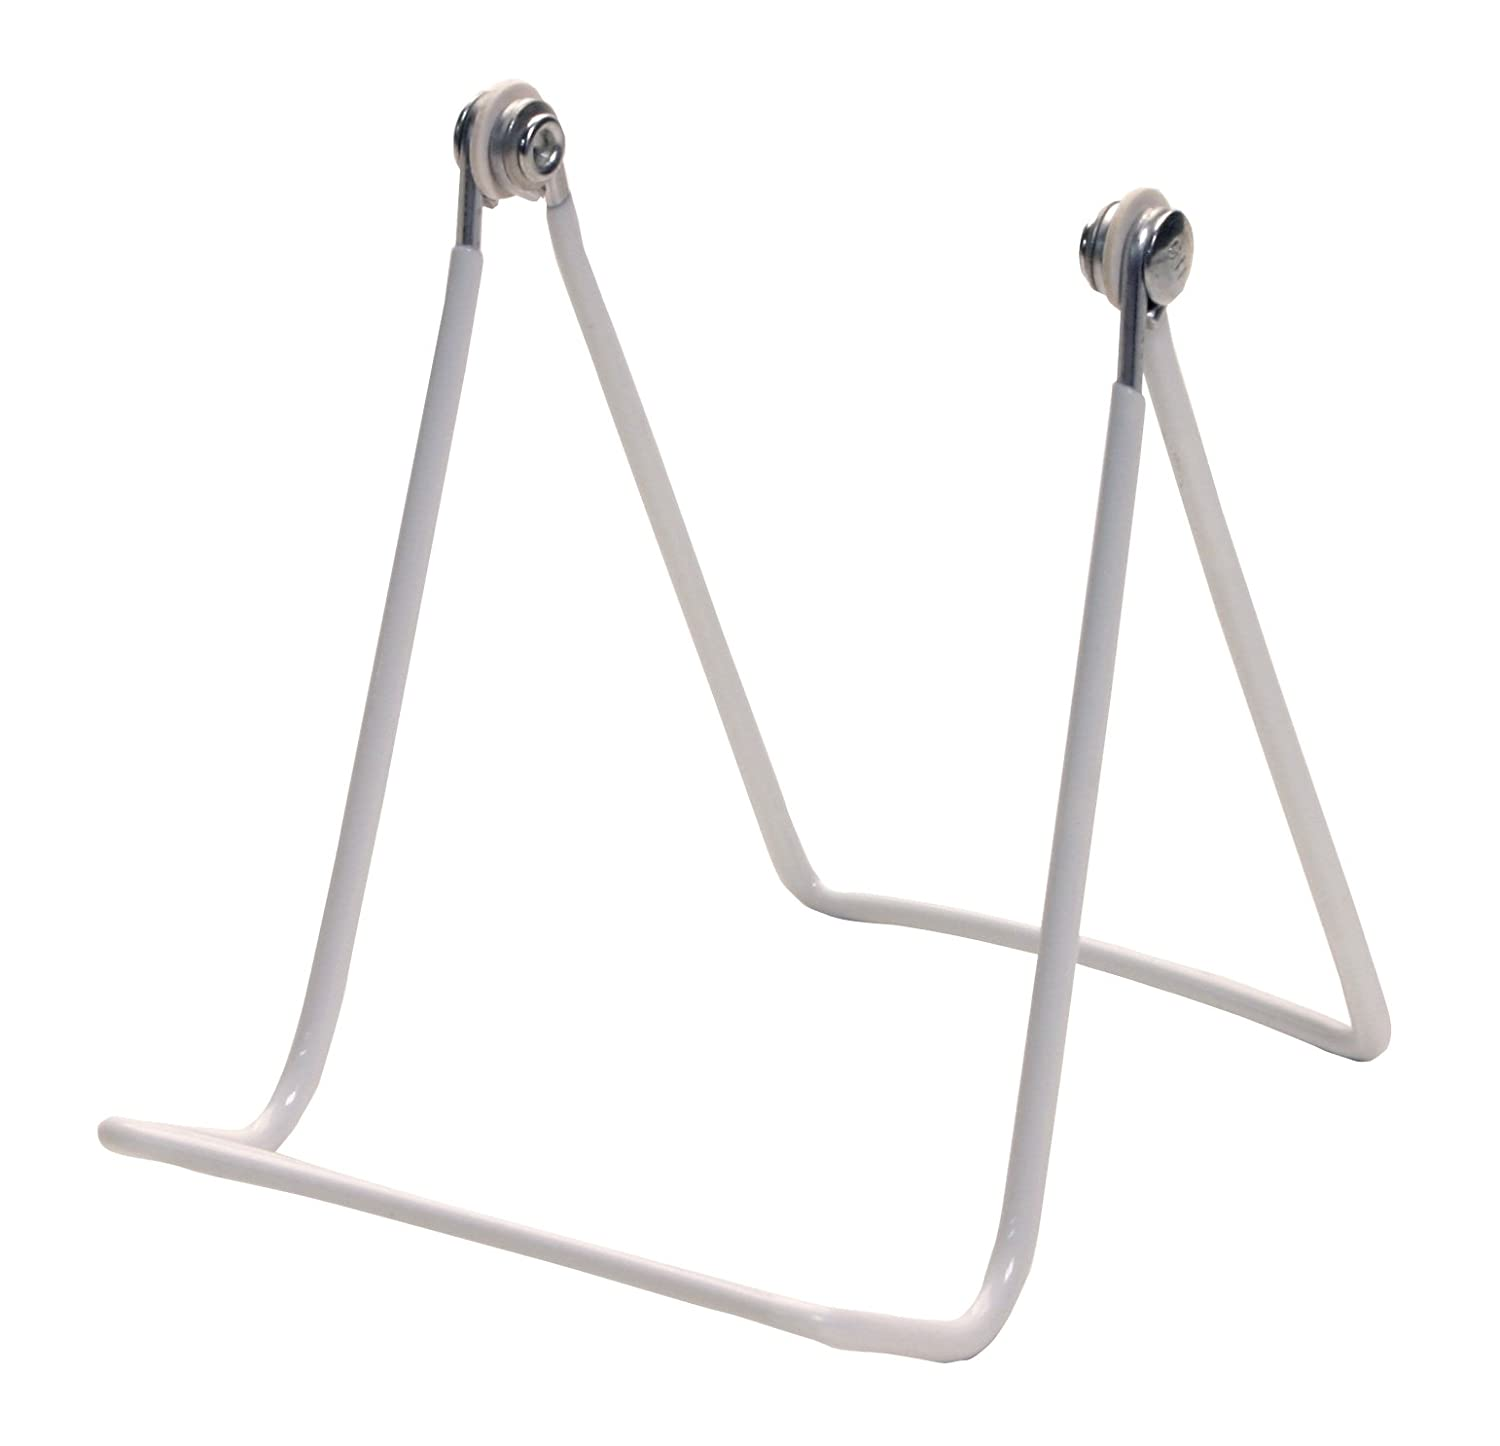 Amazon.com: Gibson Holders Two Wire Display Stand for Art, Plates ...